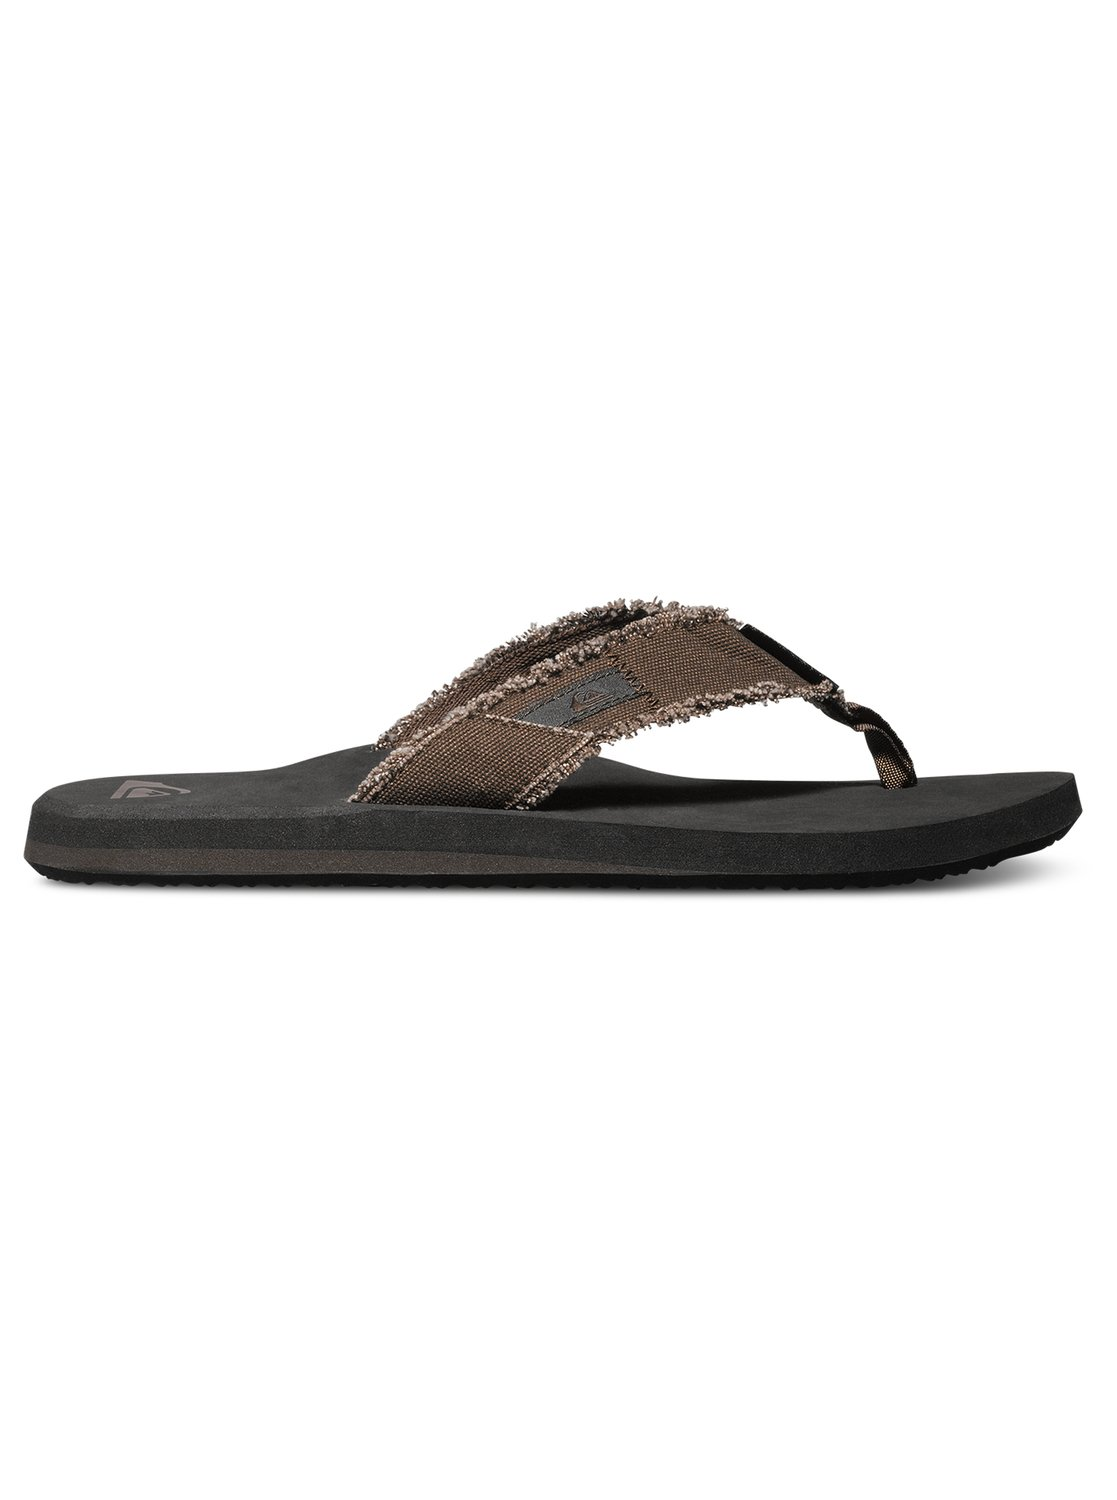 99f7379fe31a 2 Monkey Abyss - Sandals for Men Brown AQYL100047 Quiksilver